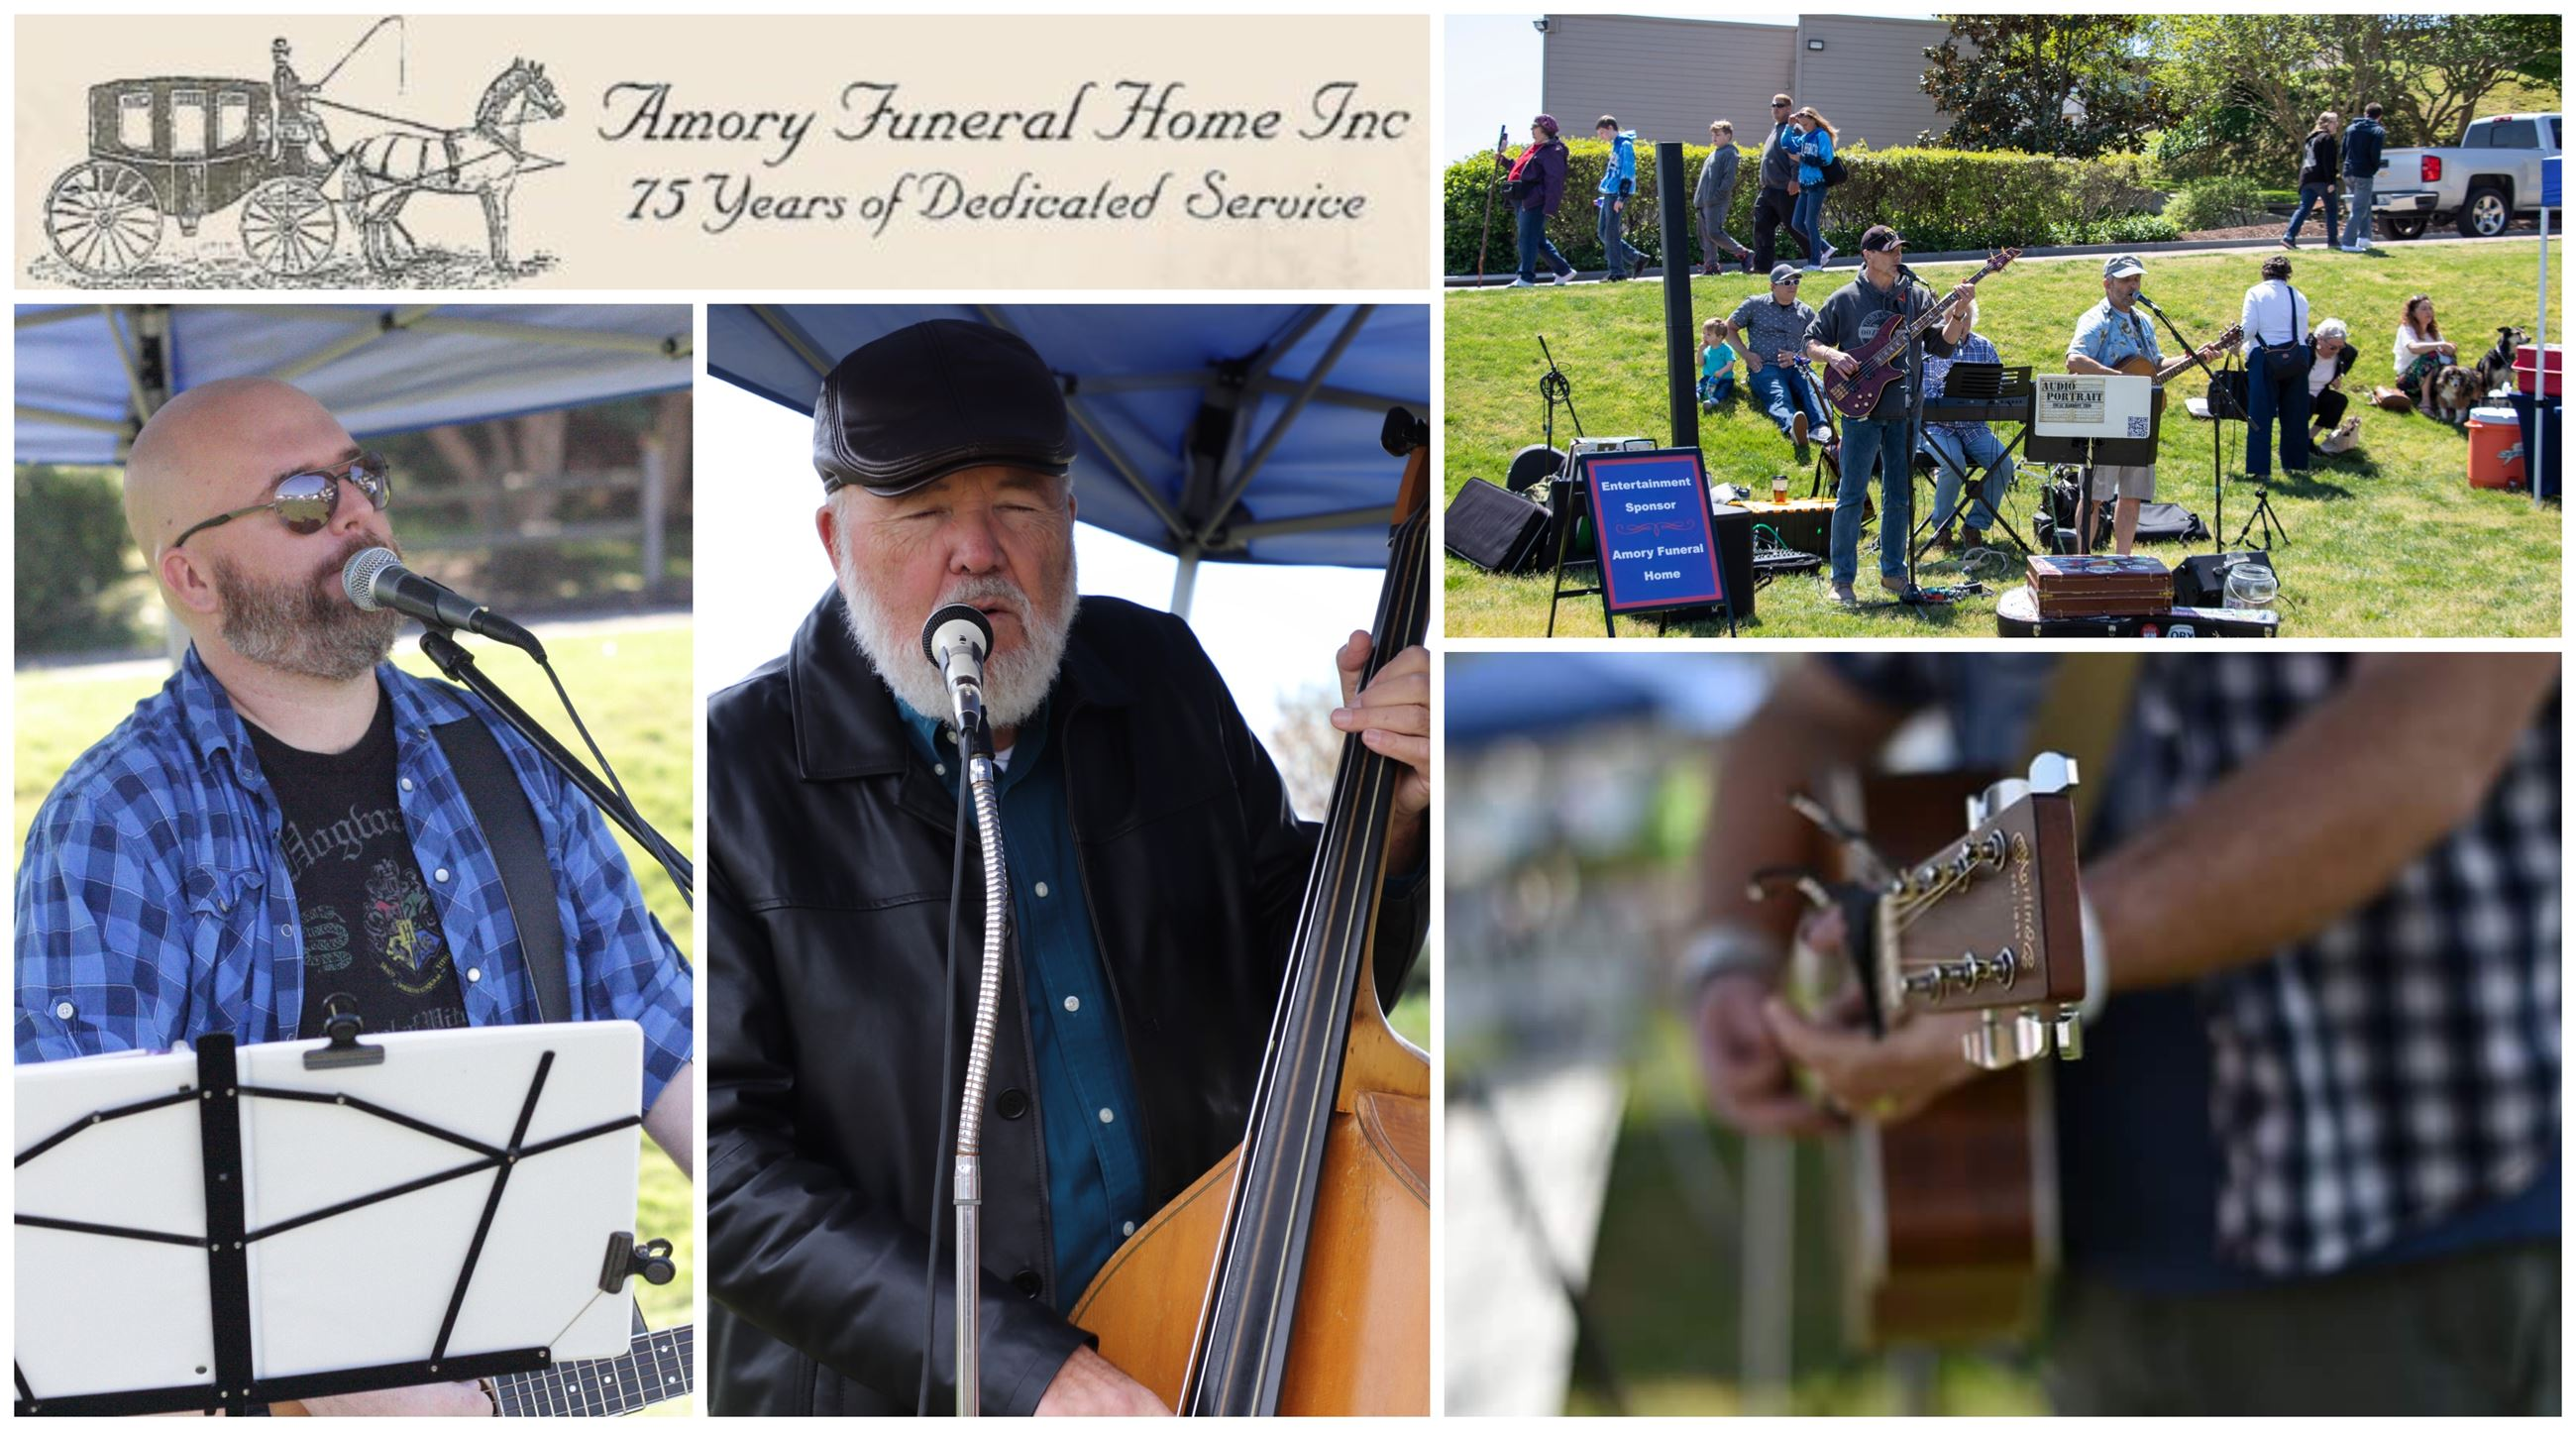 Amory Funeral Home Market Days Entertainment Sponsor